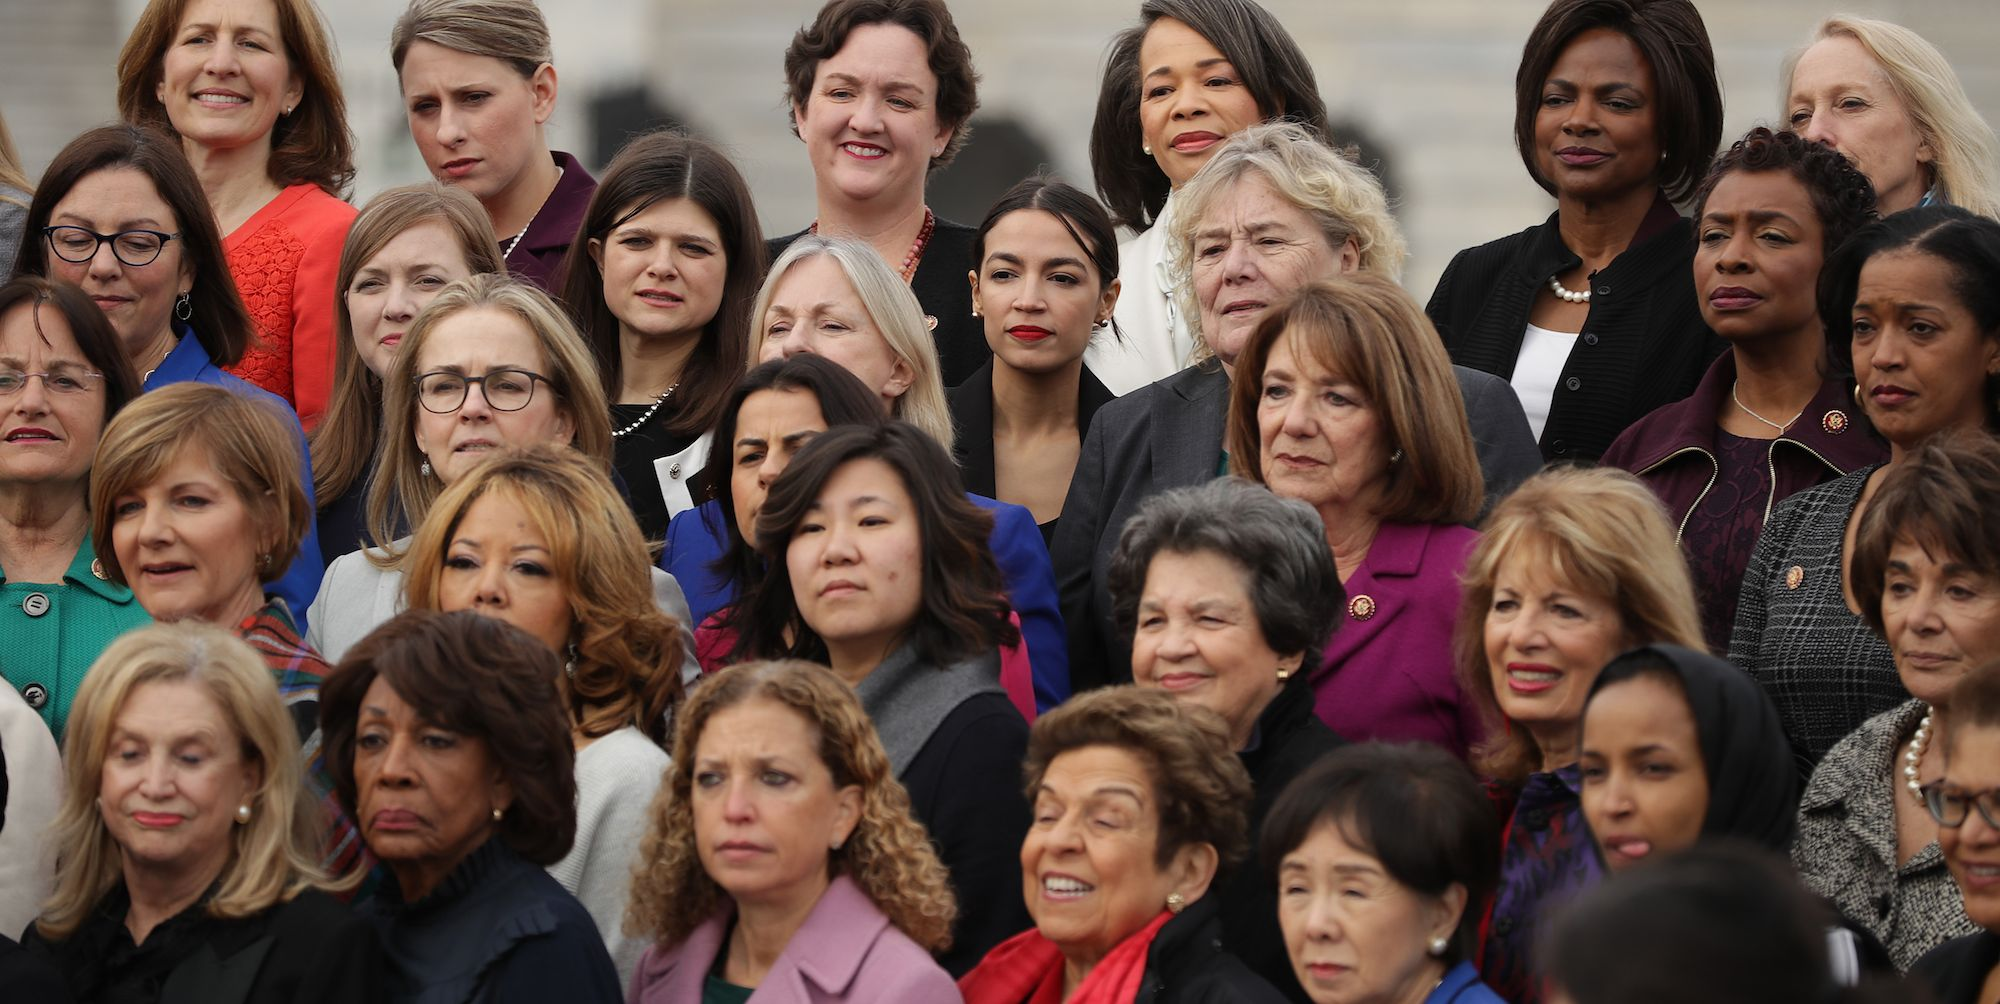 House Speaker Nancy Pelosi And All House Democratic Women Pose For Group Photo At Capitol